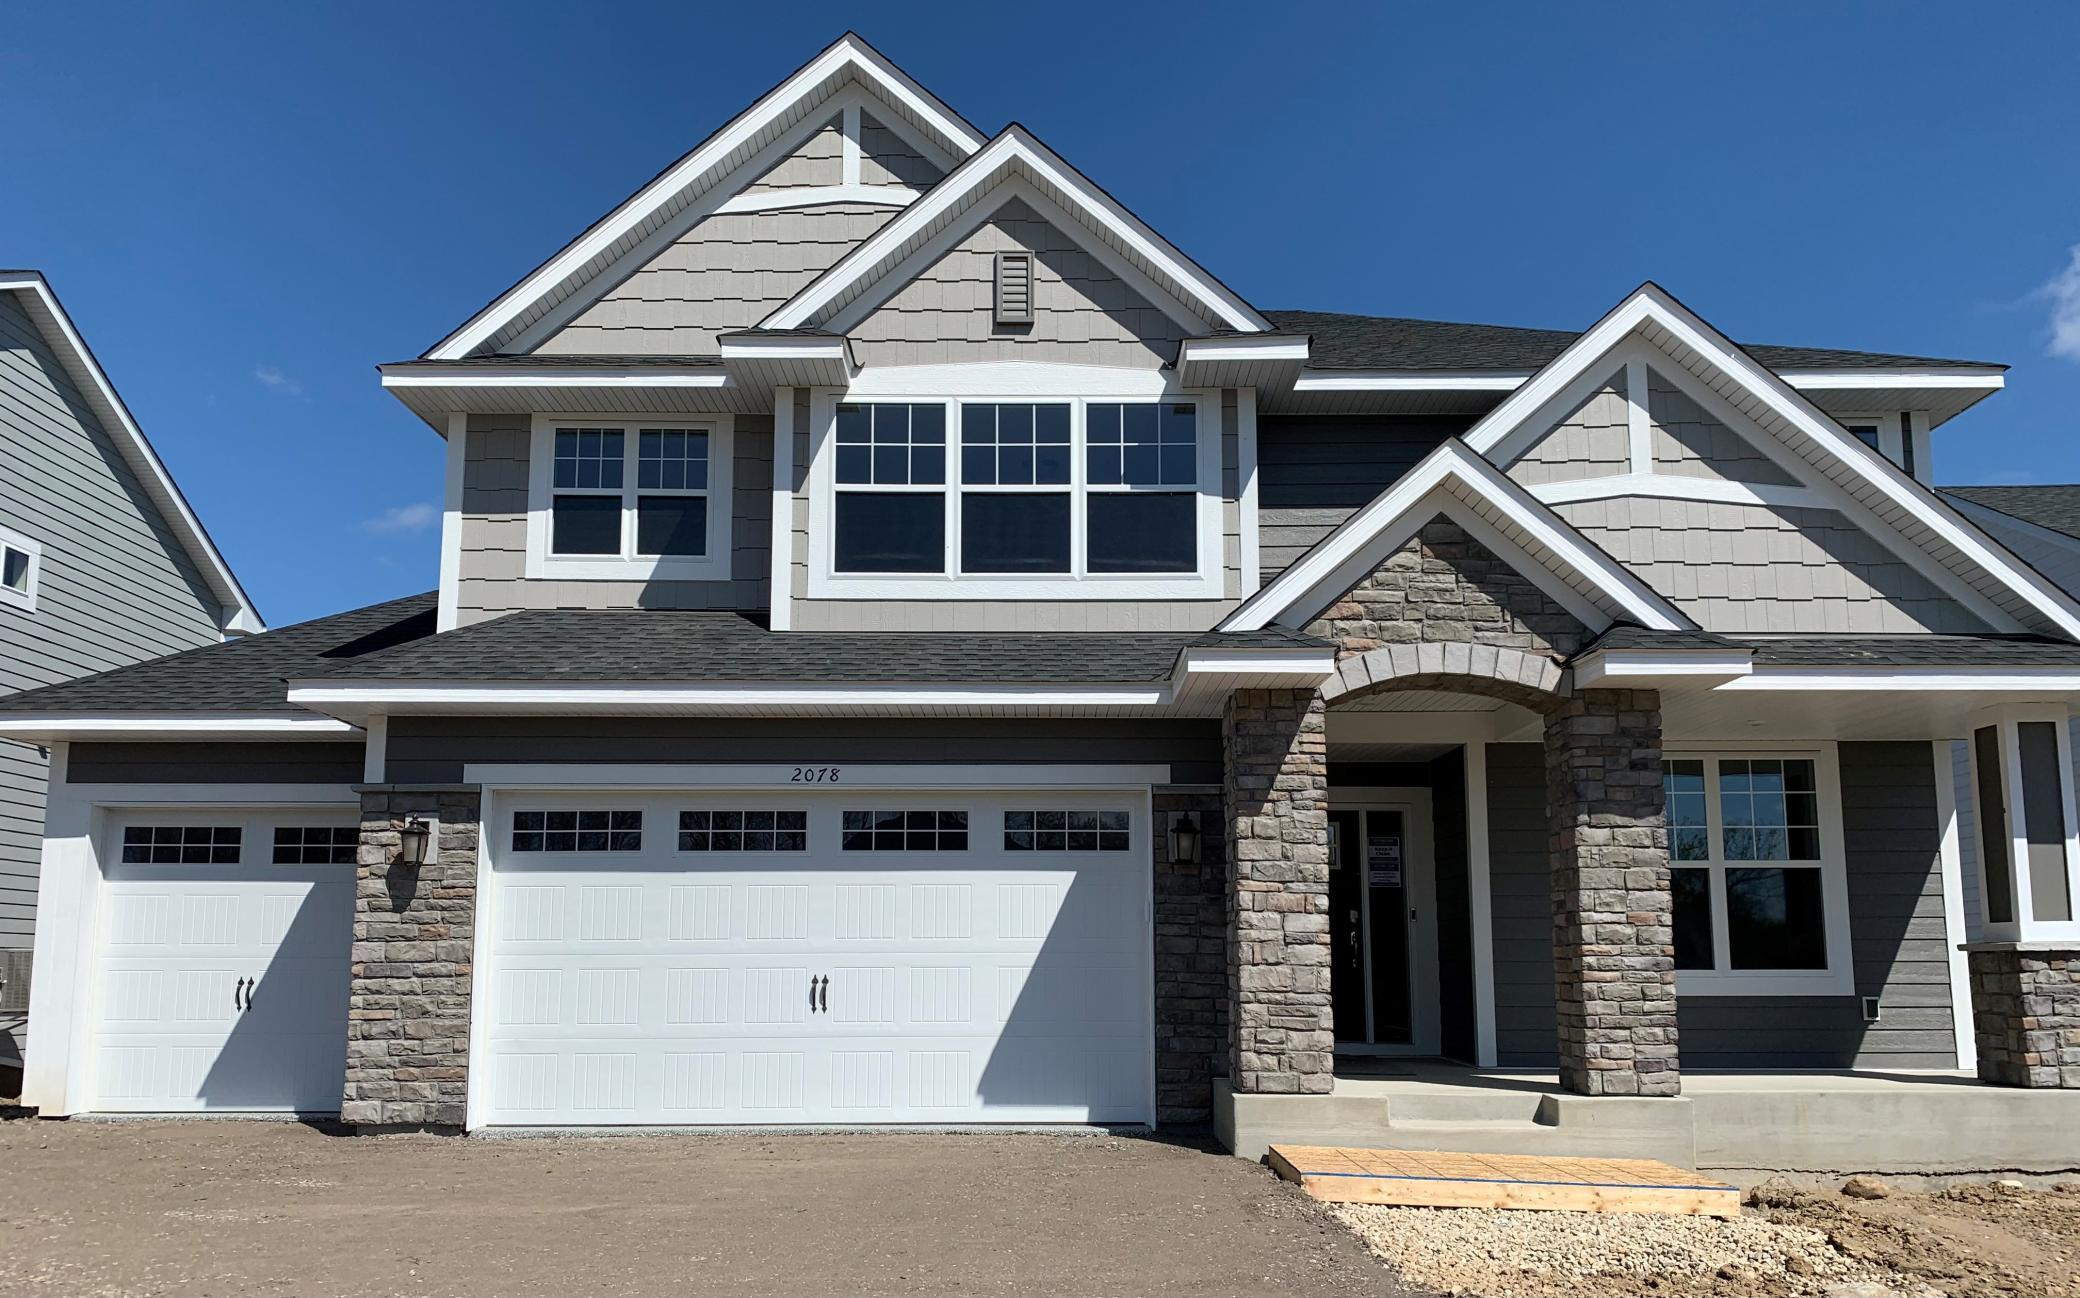 2078 Paisley Path Property Photo - Chanhassen, MN real estate listing